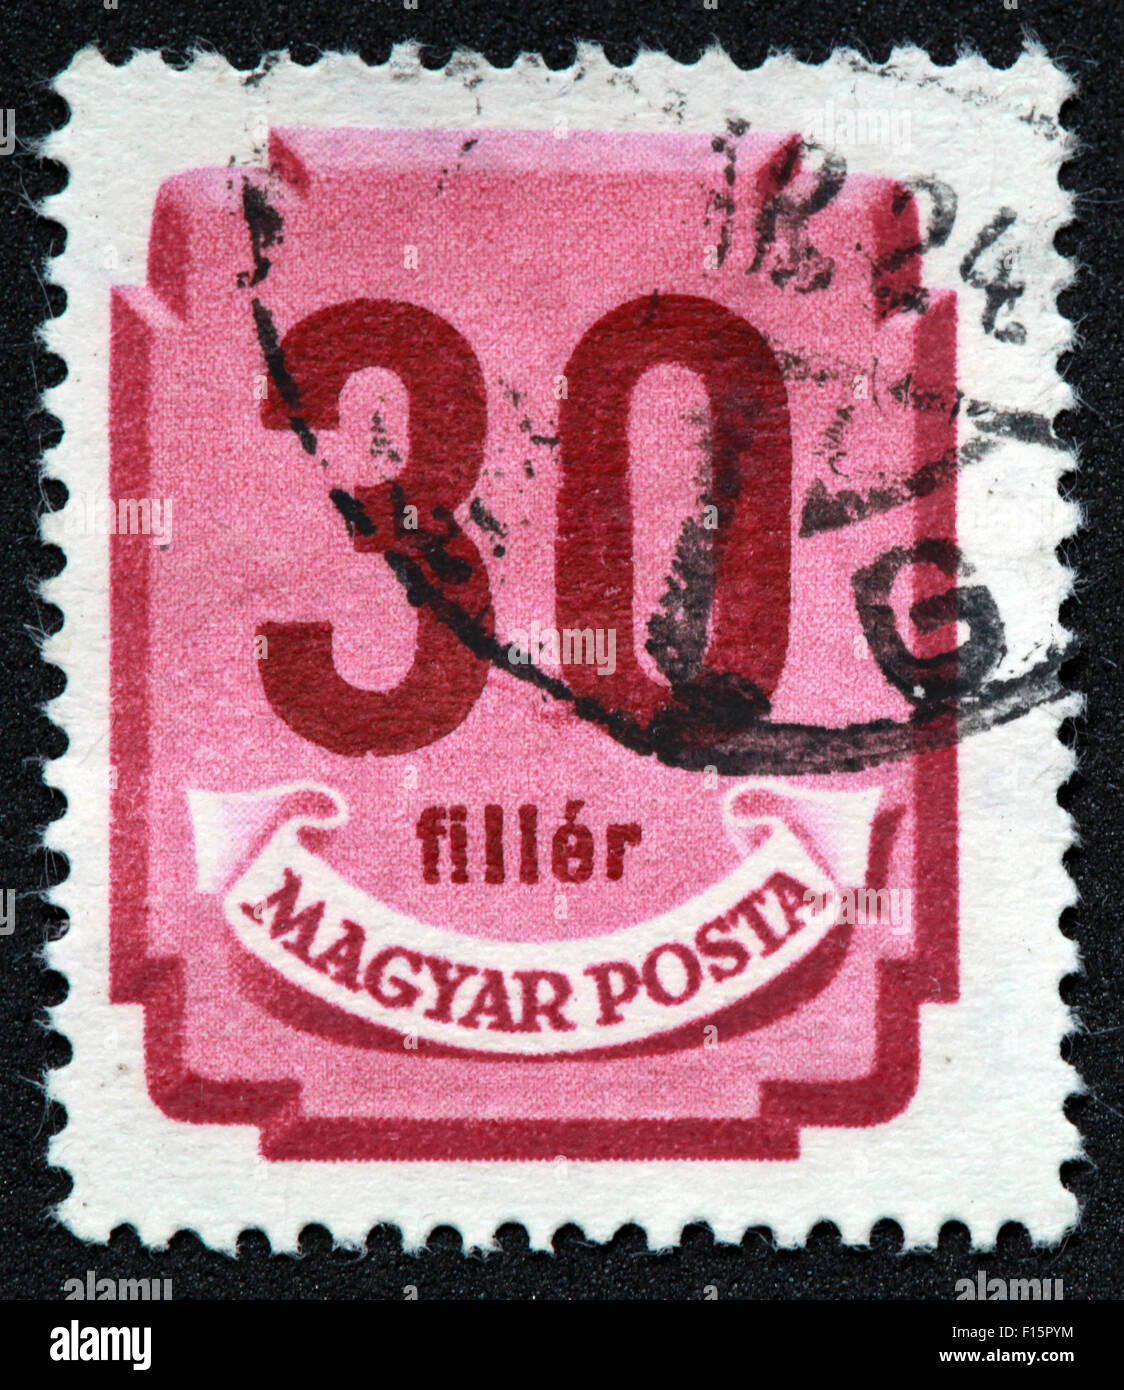 Magyar Posta 30 Filler Pink Red Stamp - Stock Image